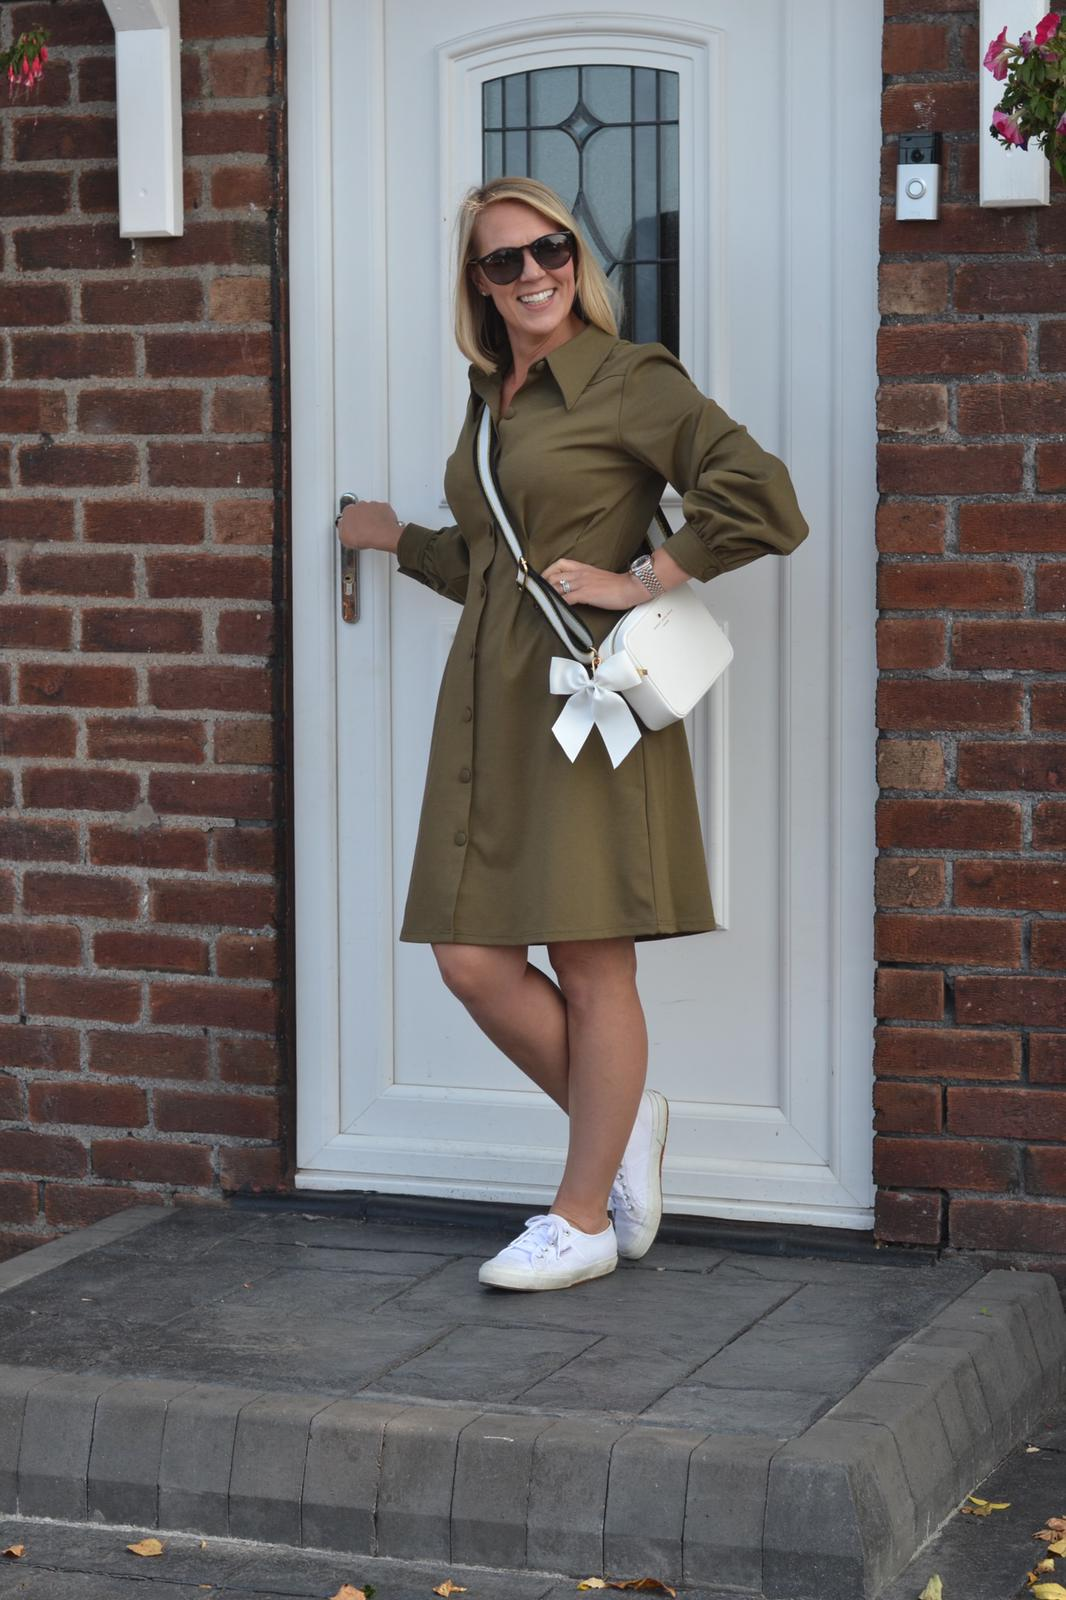 The Kate olive fit dress